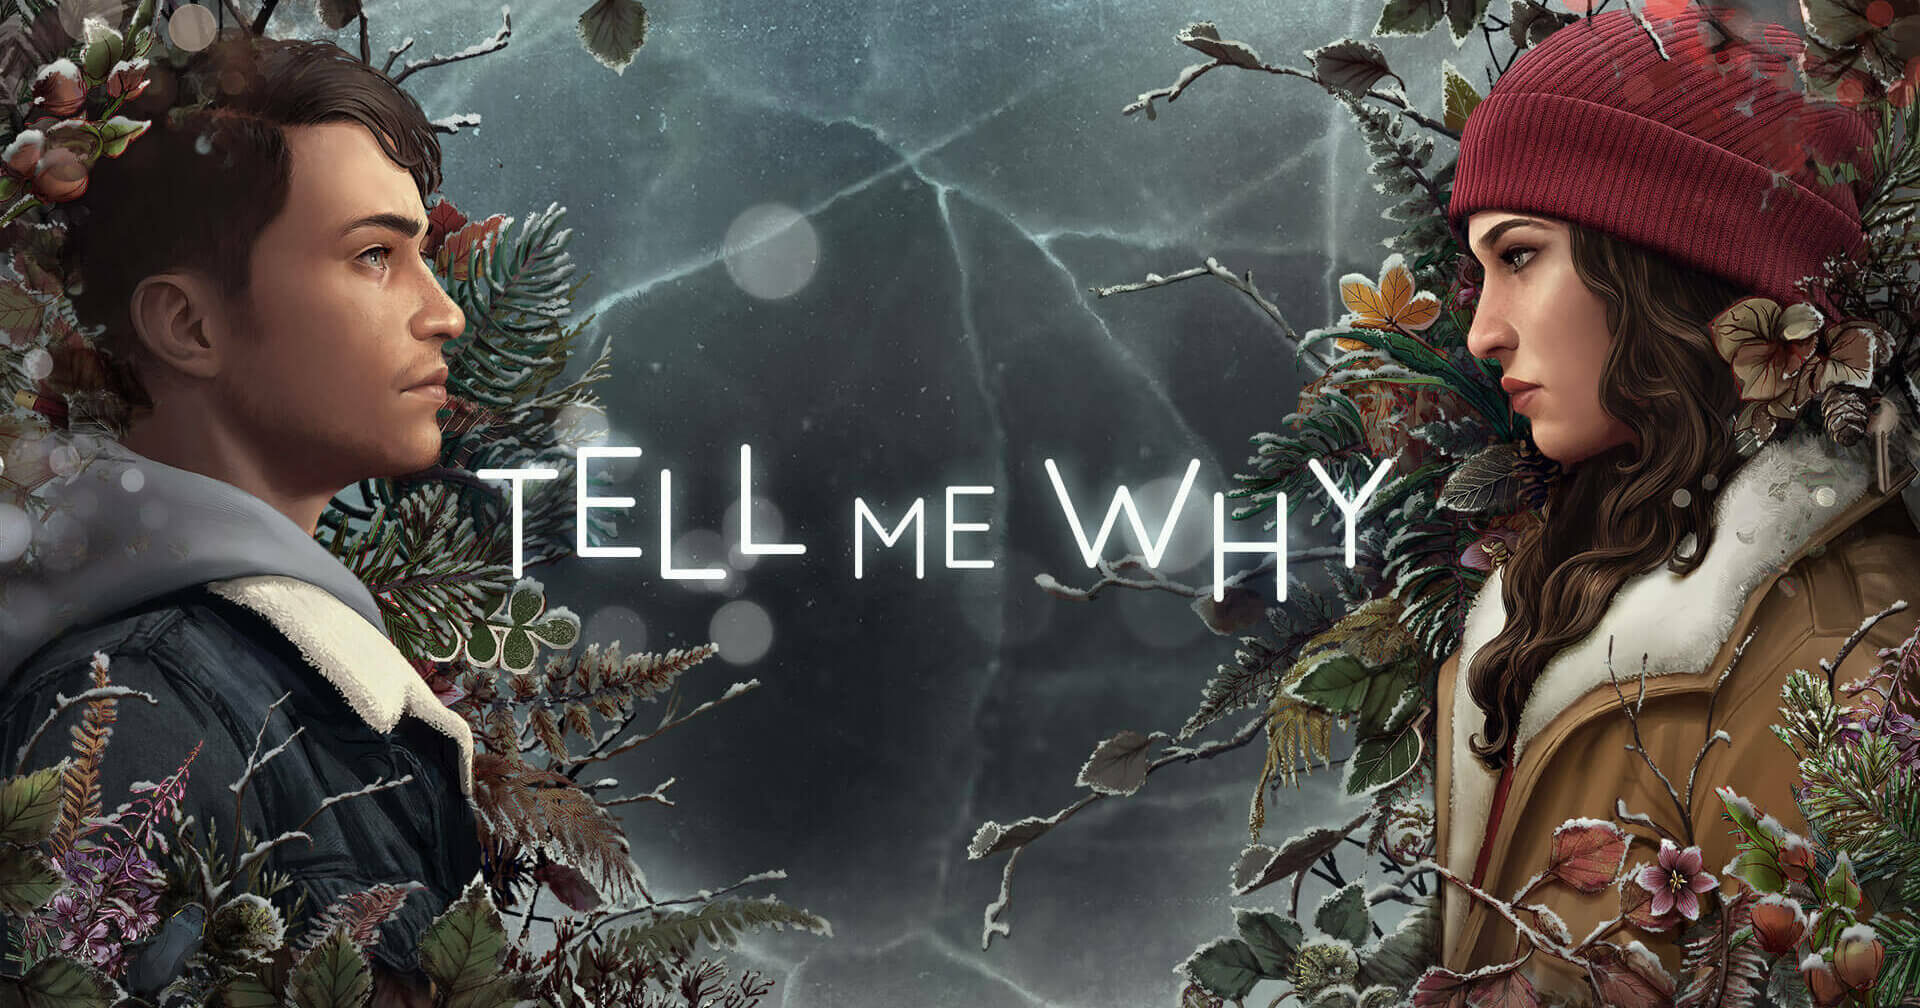 The release date for Chapter 1 of Tell Me Why was announced during the Xbox Showcase on July 23.